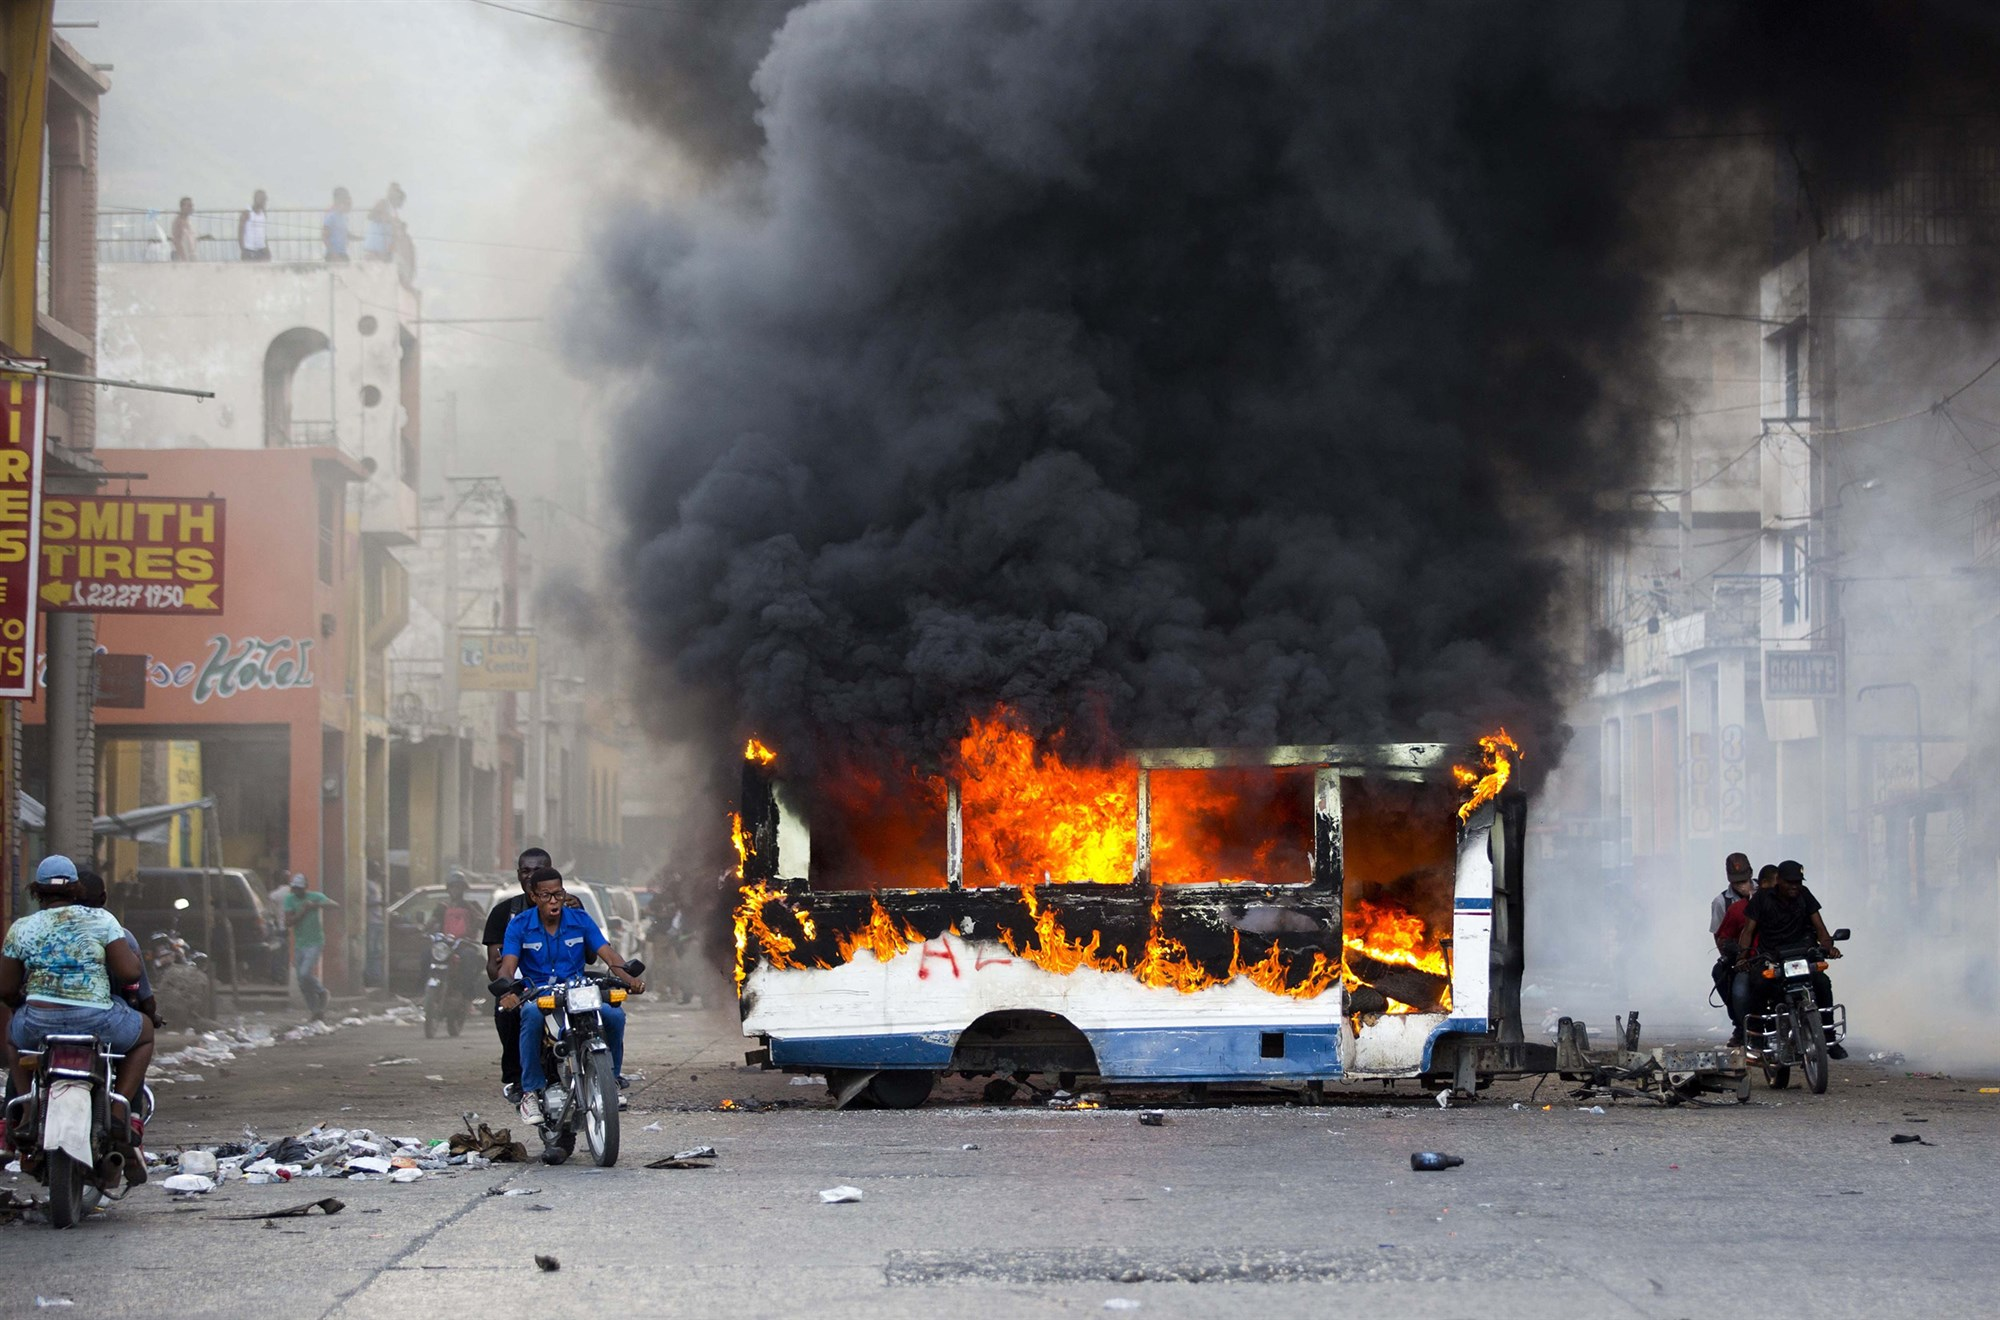 A bus burning with thick clouds of black smoke billowing above it, and two men on a motorcycle riding by.